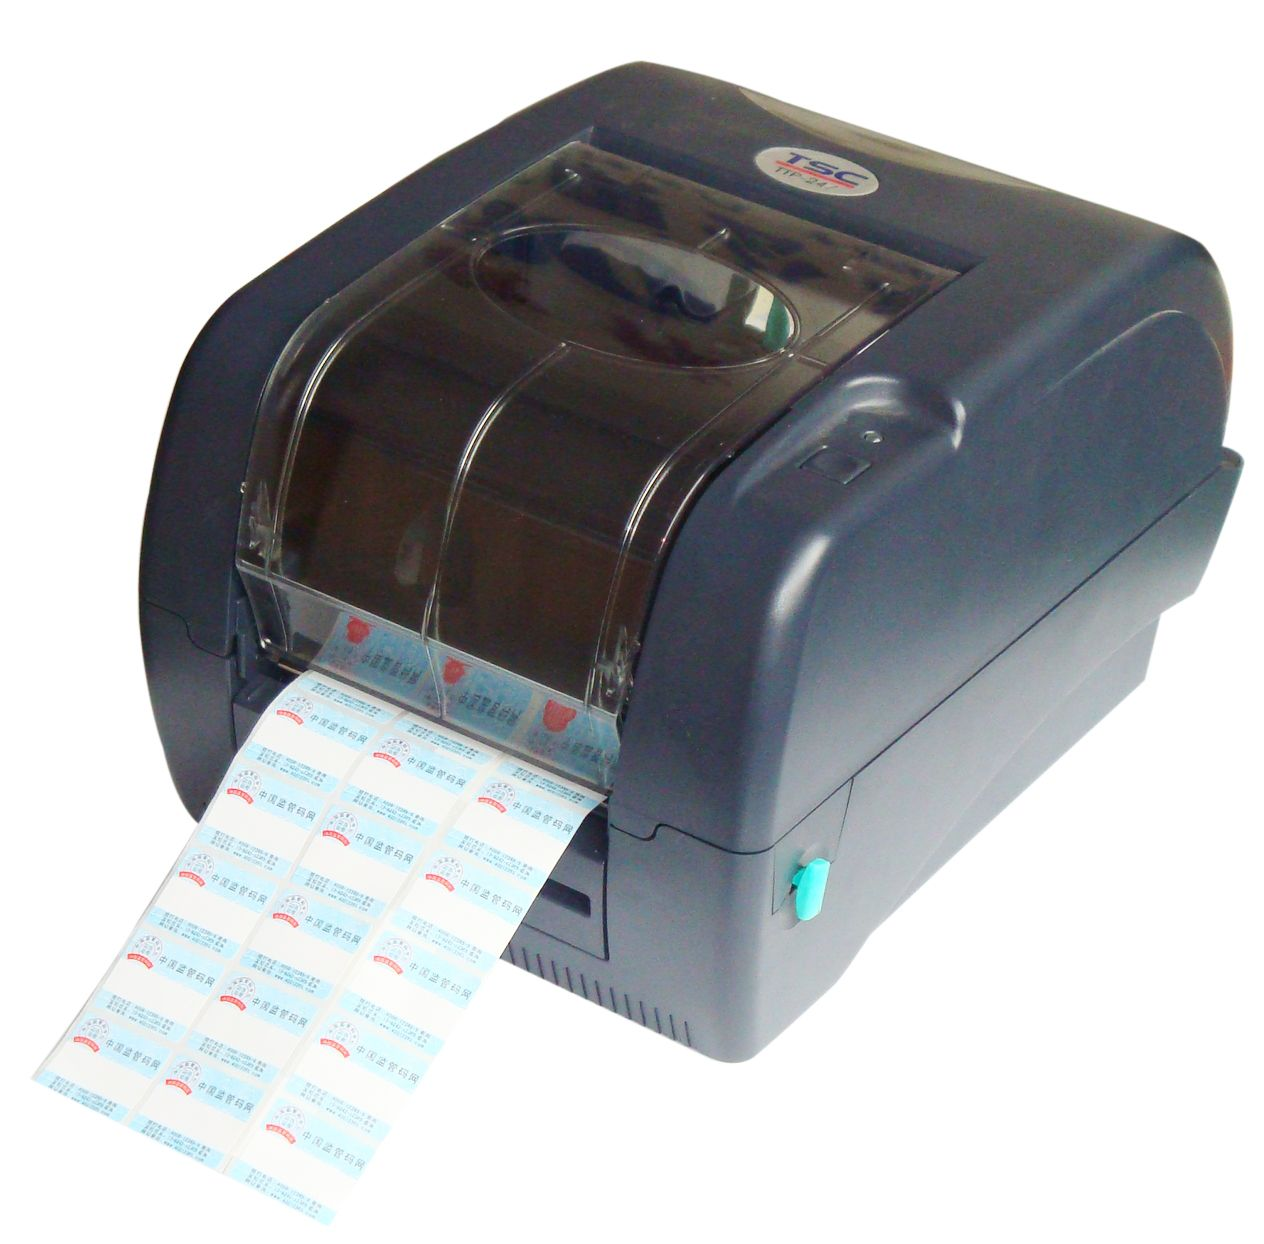 DESKTOP PRINTERS TSC TTP 247 Model